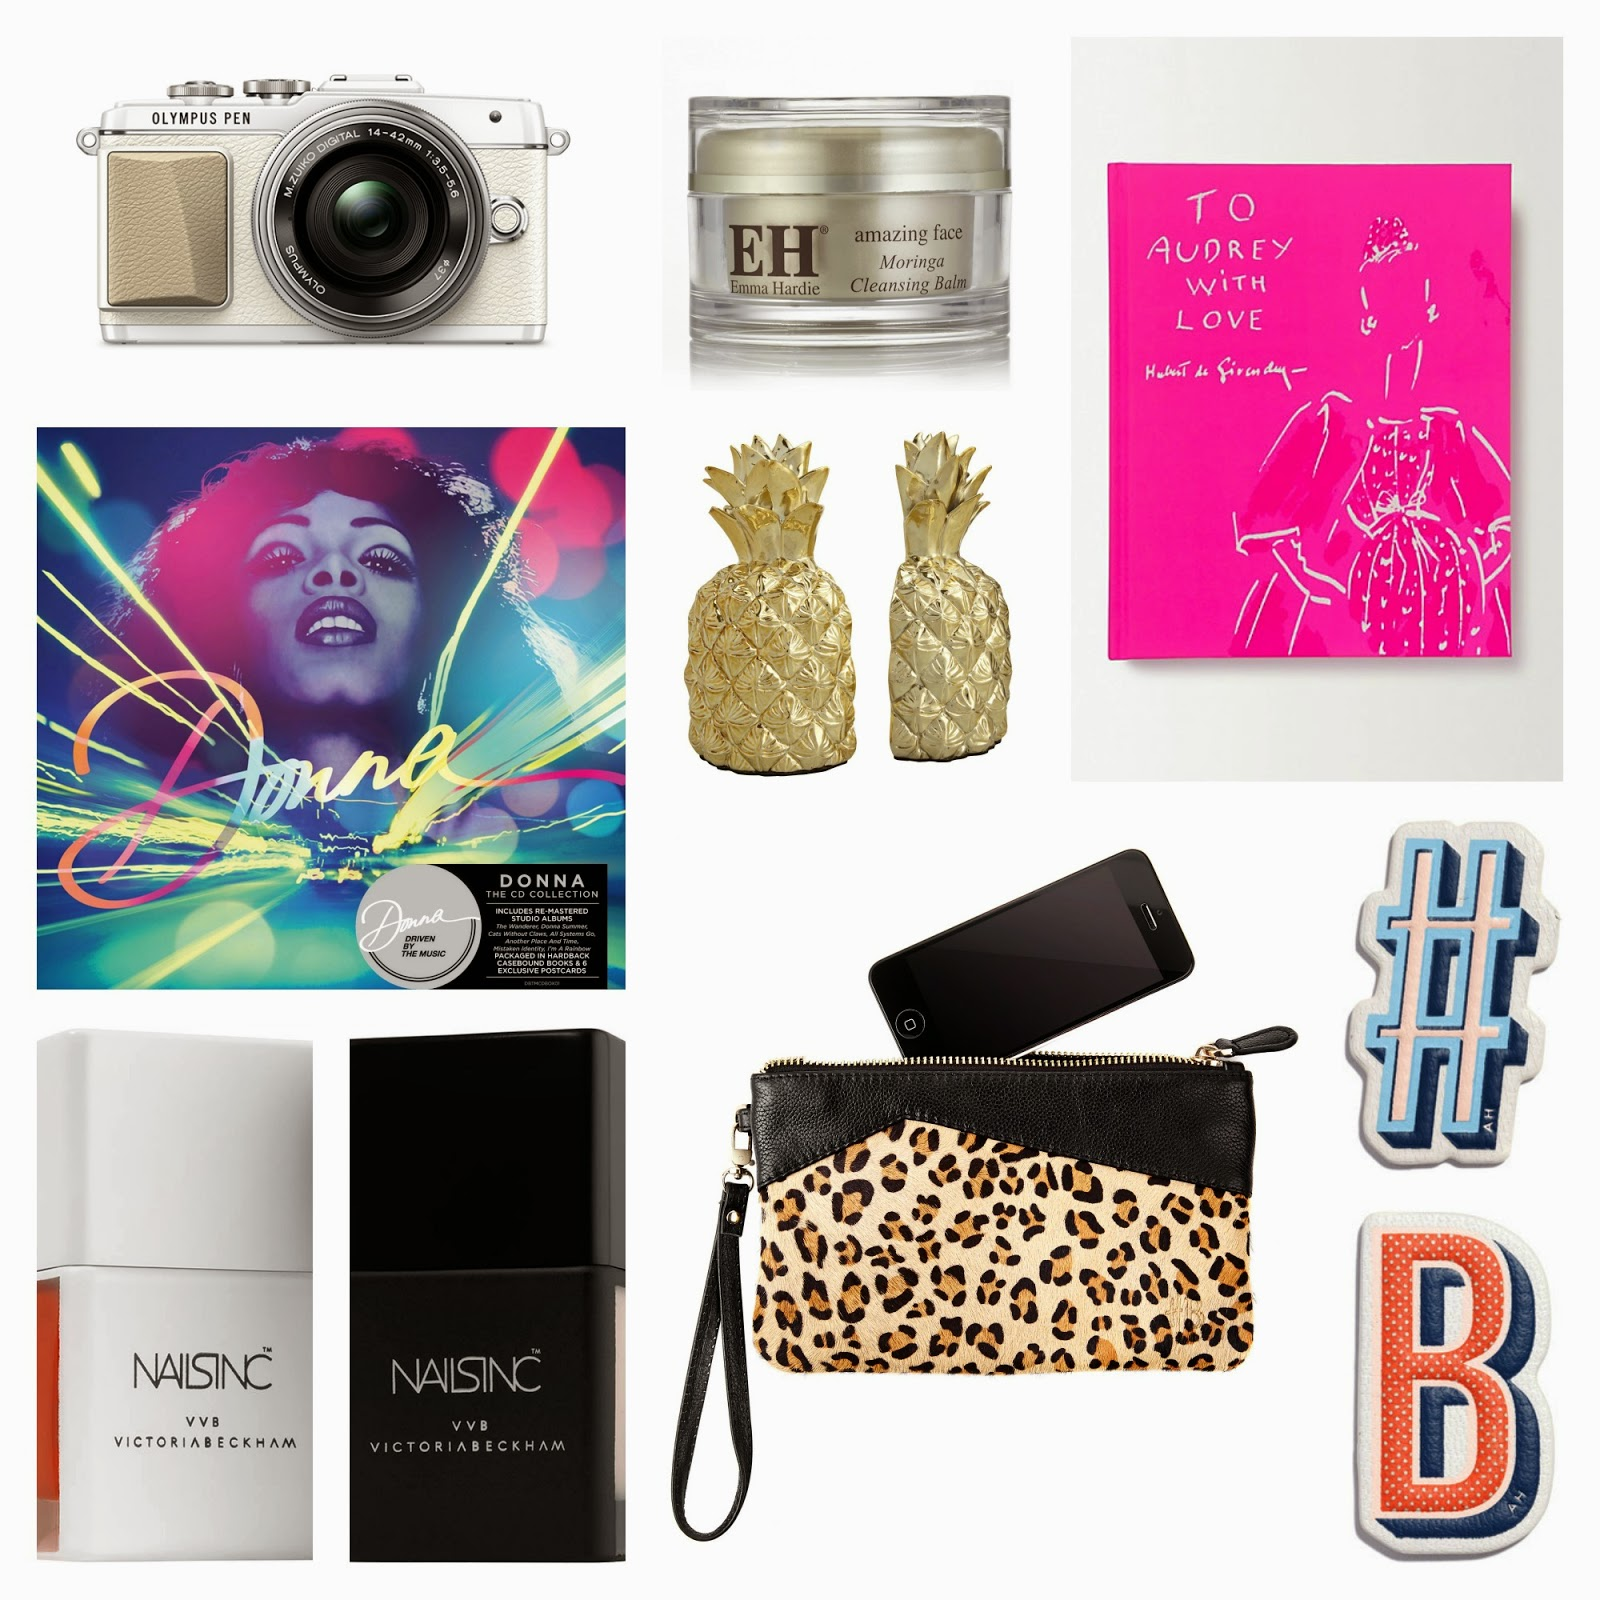 What to get the mama who has everything - or doesn't want anything this Christmas! | christmas gifts | gift guide | womens gifts | luxe gifts | selfrisges | handbag butler | anya hind march } donna summer | bookends | pineapple | audrey hepburn book | camera | selfie | olympus pen camera | nails inc | victoria beckham | cleanser | gifts for mums | womens gifts | mamasVIB